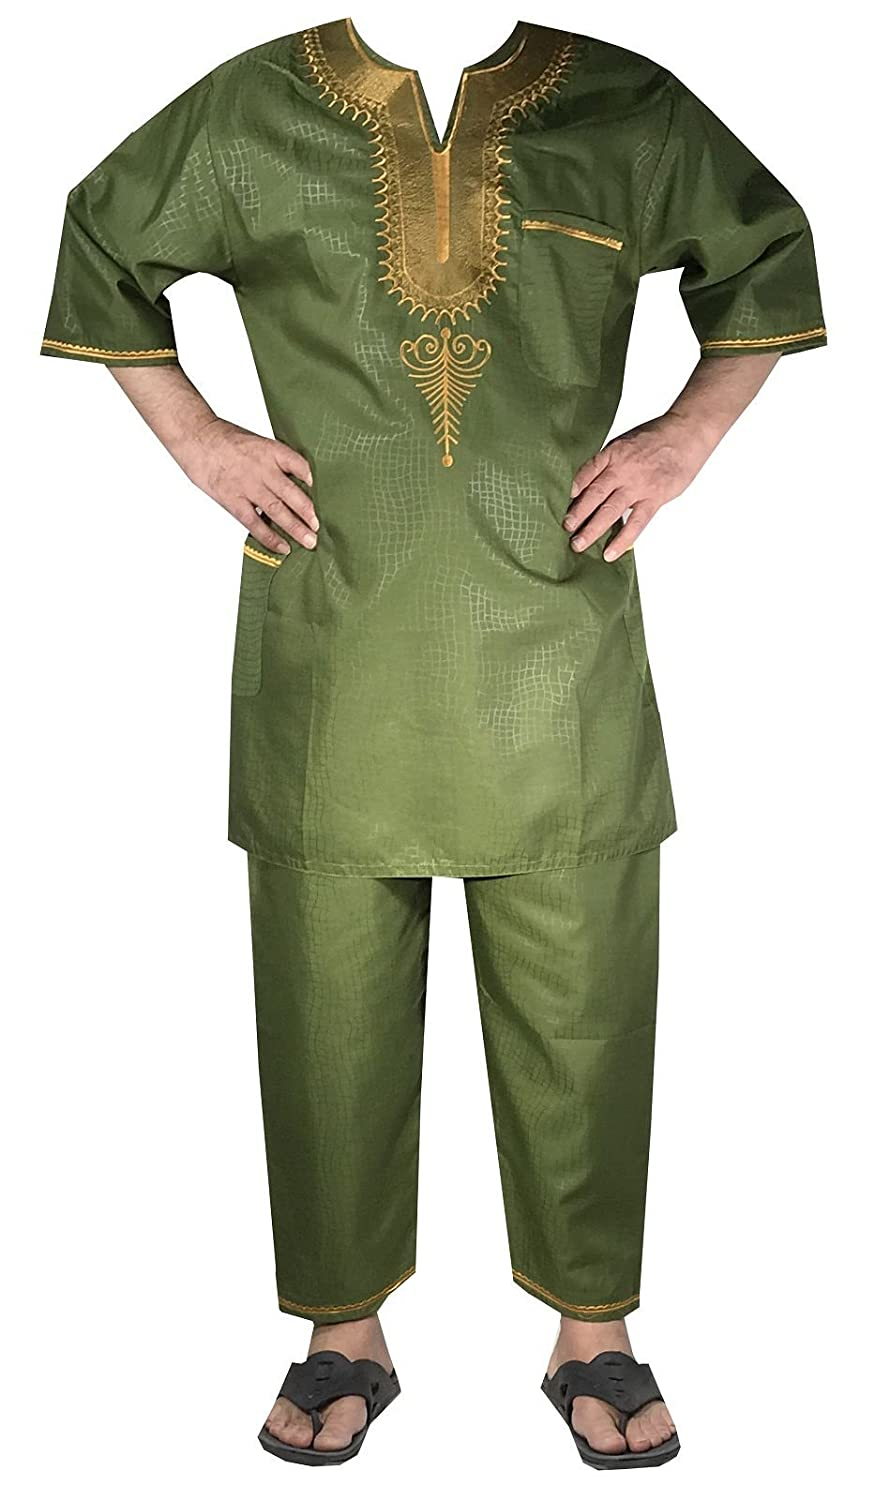 DecoraApparel African Traditional Men Suit Ethnic Clothing Brocade Pant Set, One Size Green Gold) 311380530808